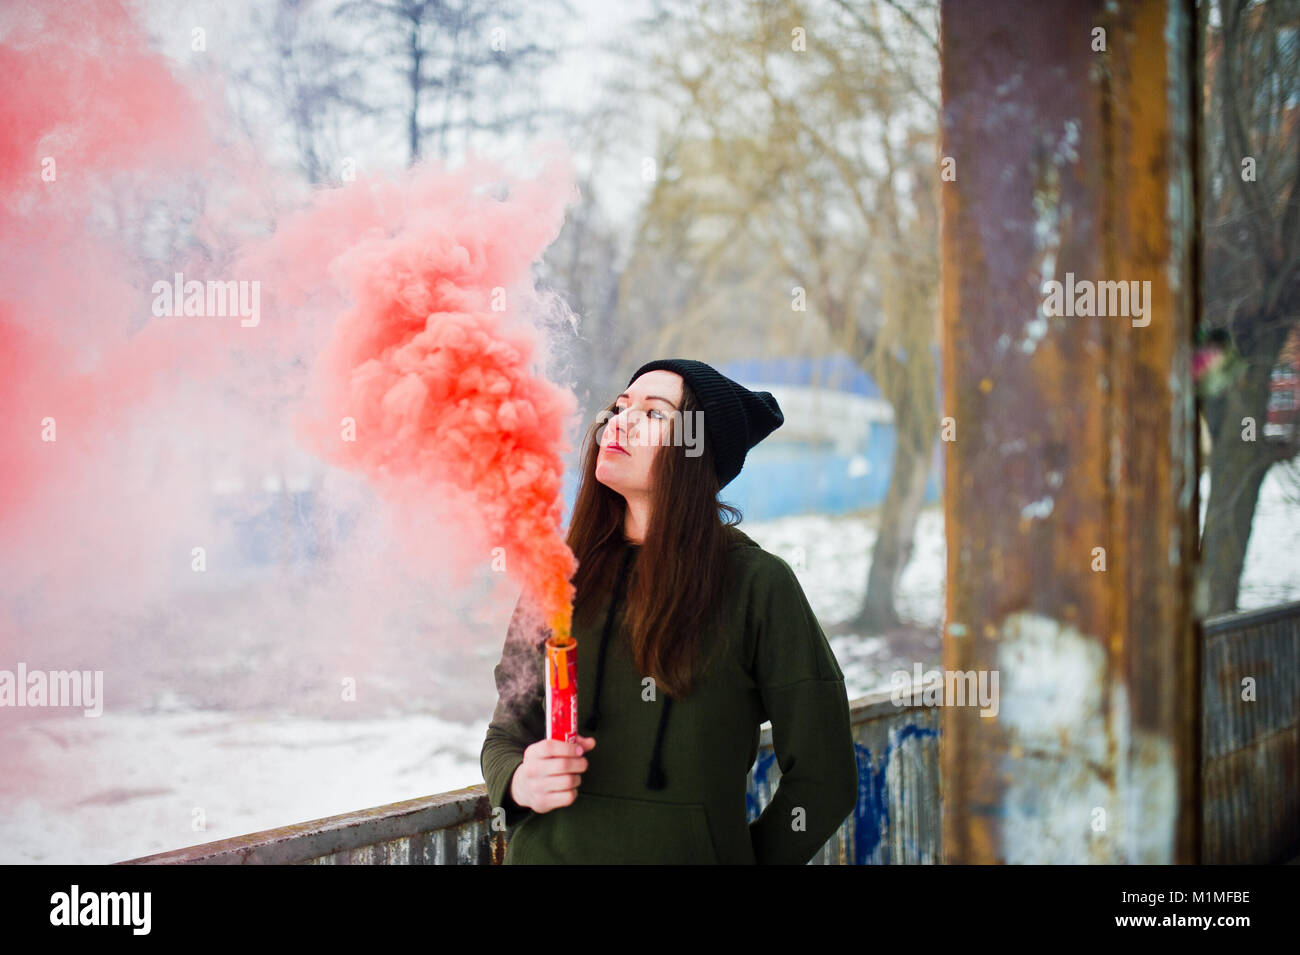 Young girl with red colored smoke bomb in hand Stock Photo